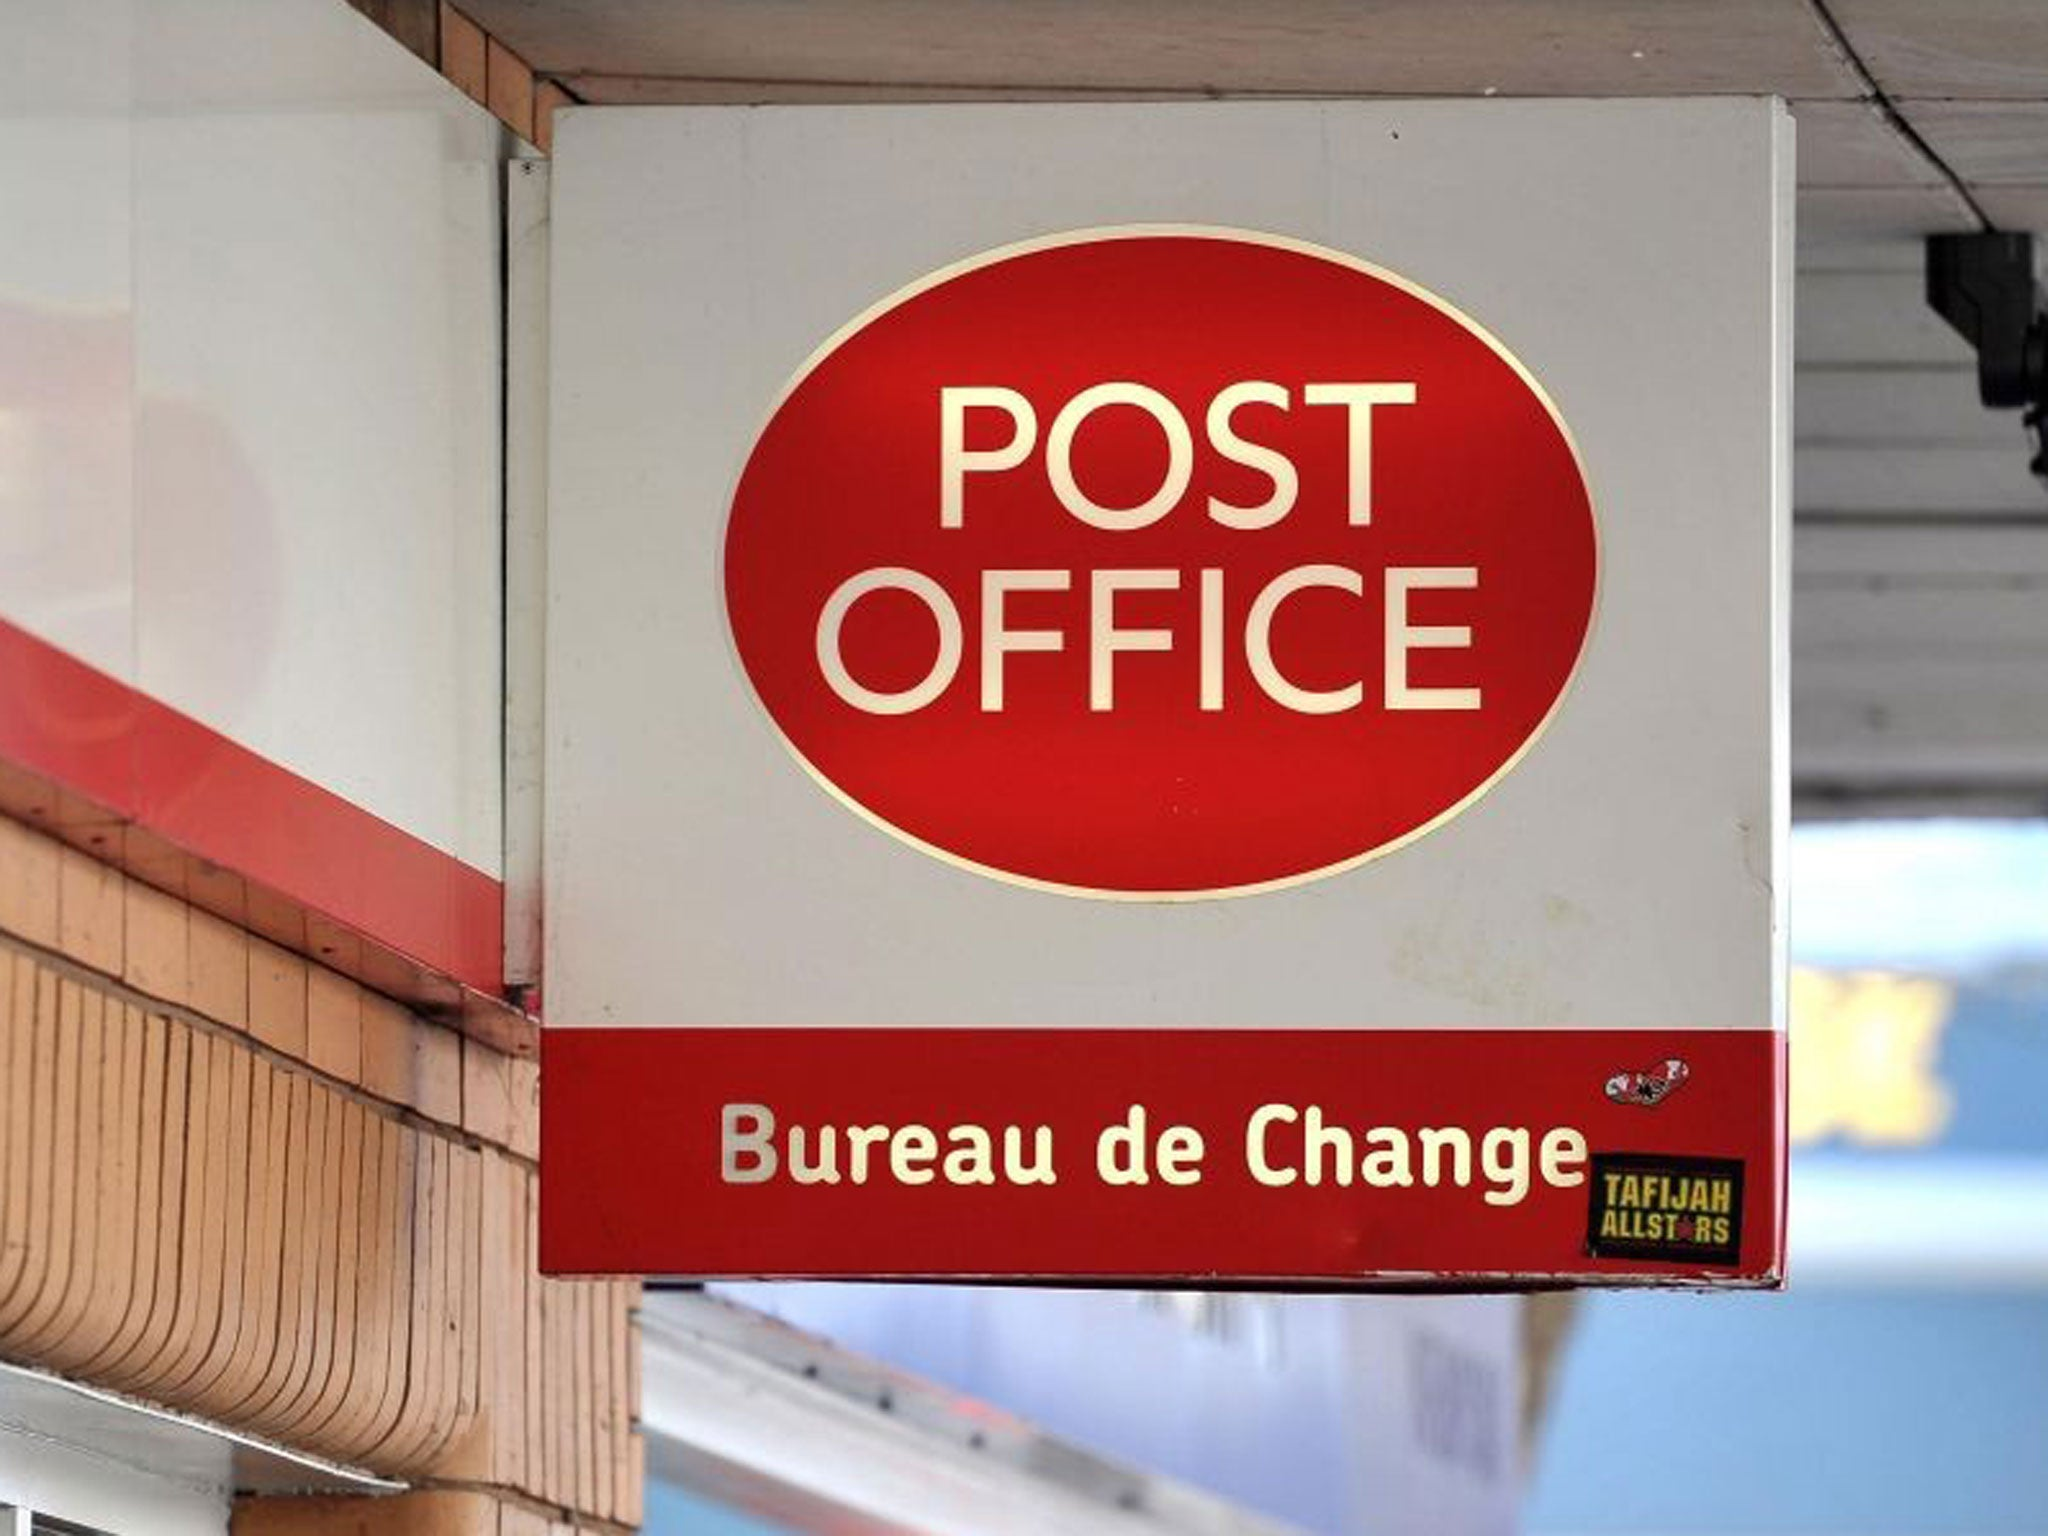 Post office to close 37 branches and cut 300 staff jobs the independent - Post office account for benefits ...